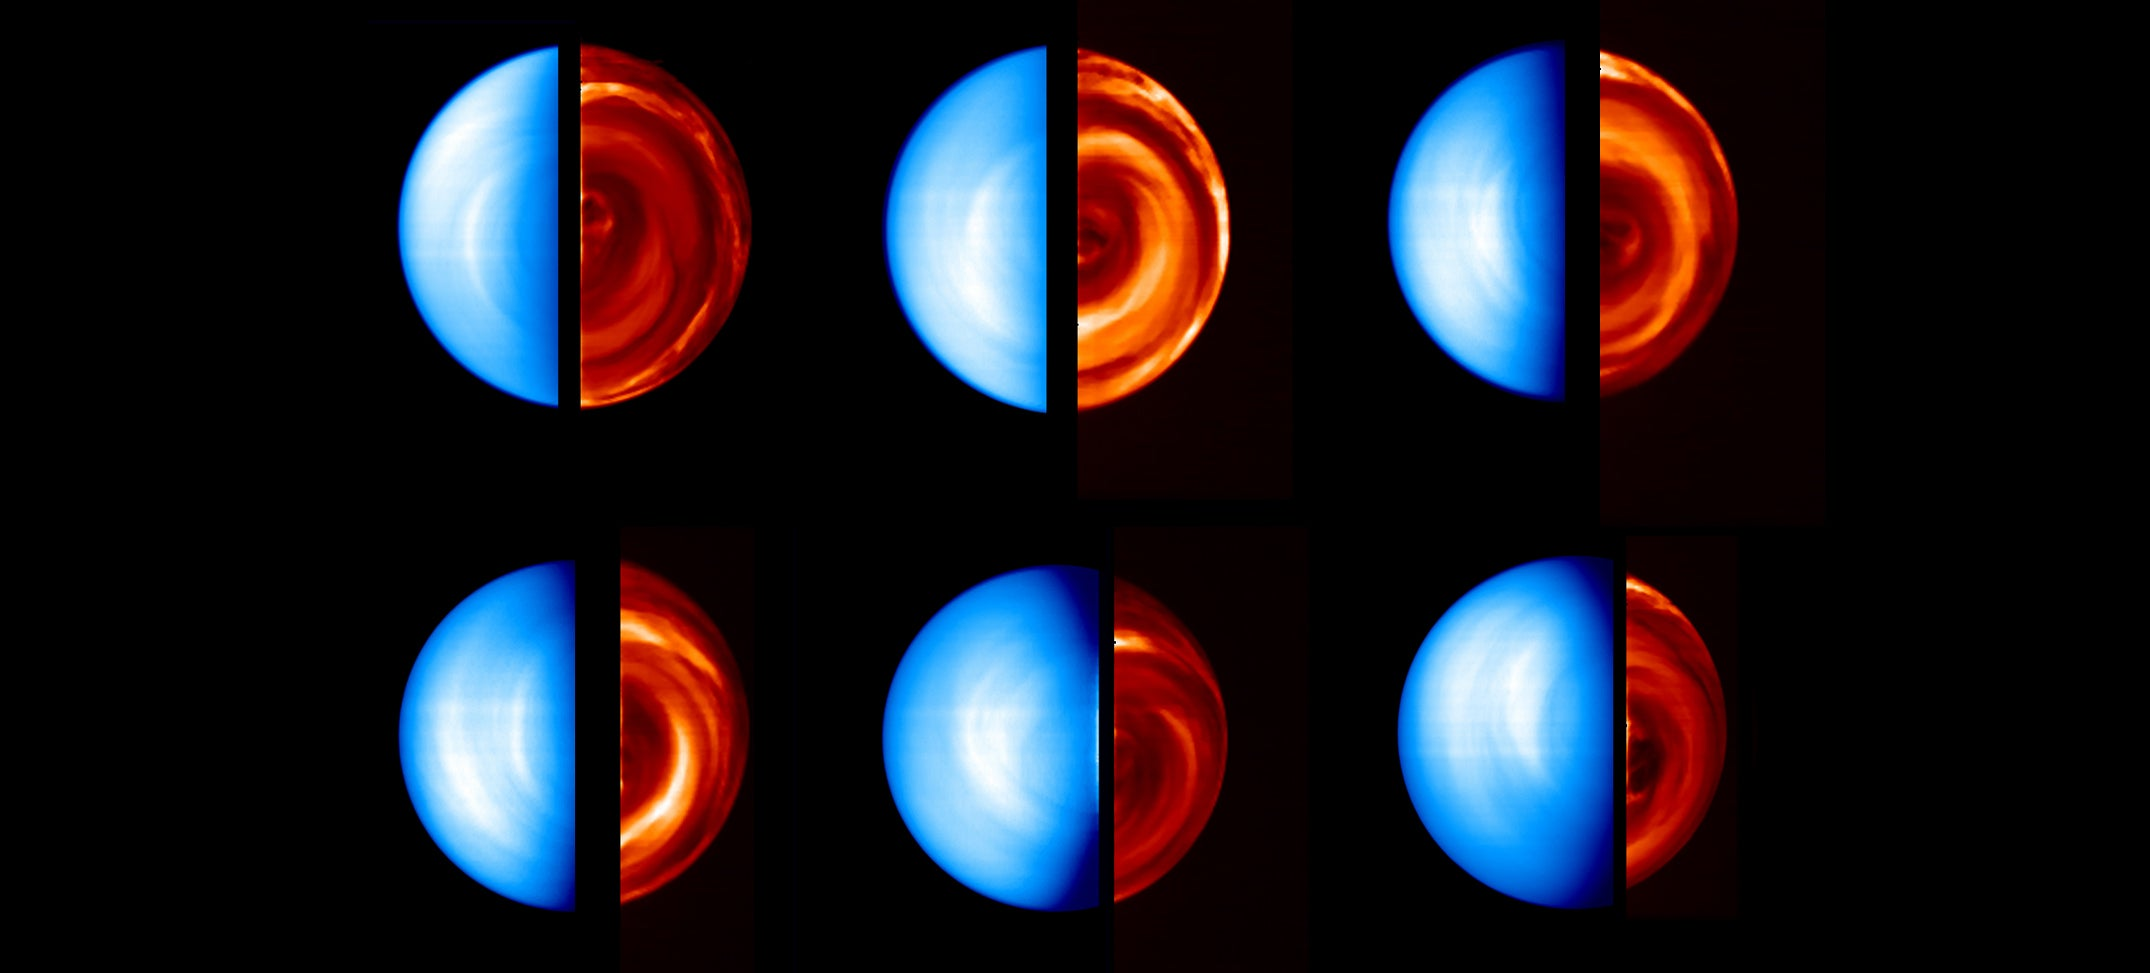 Venus By Day and Night in a Single Image